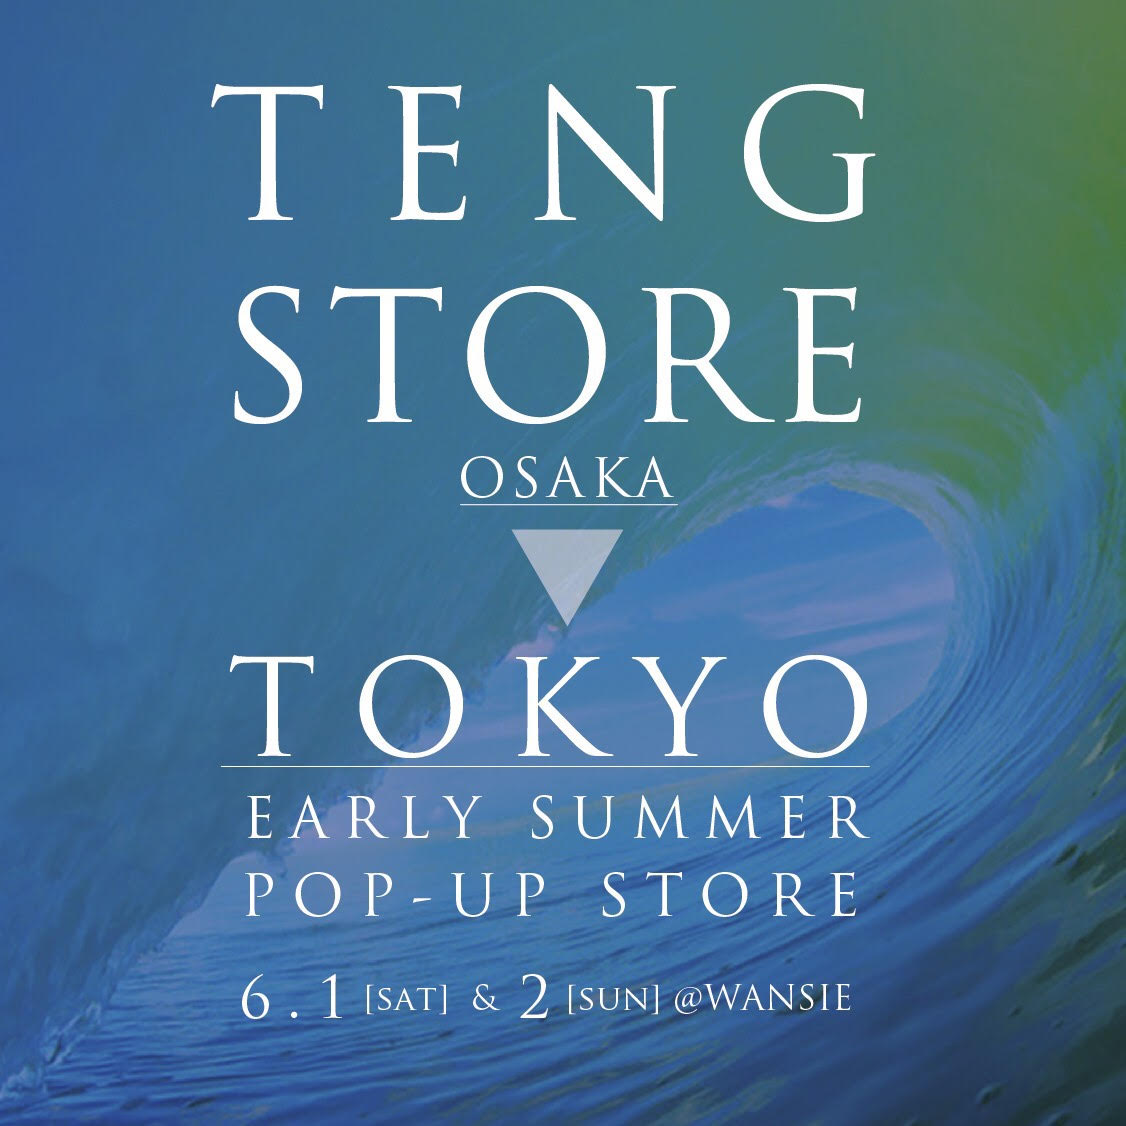 【TENGSTORE×WANSIE】EARLY SUMMER POP UP STORE